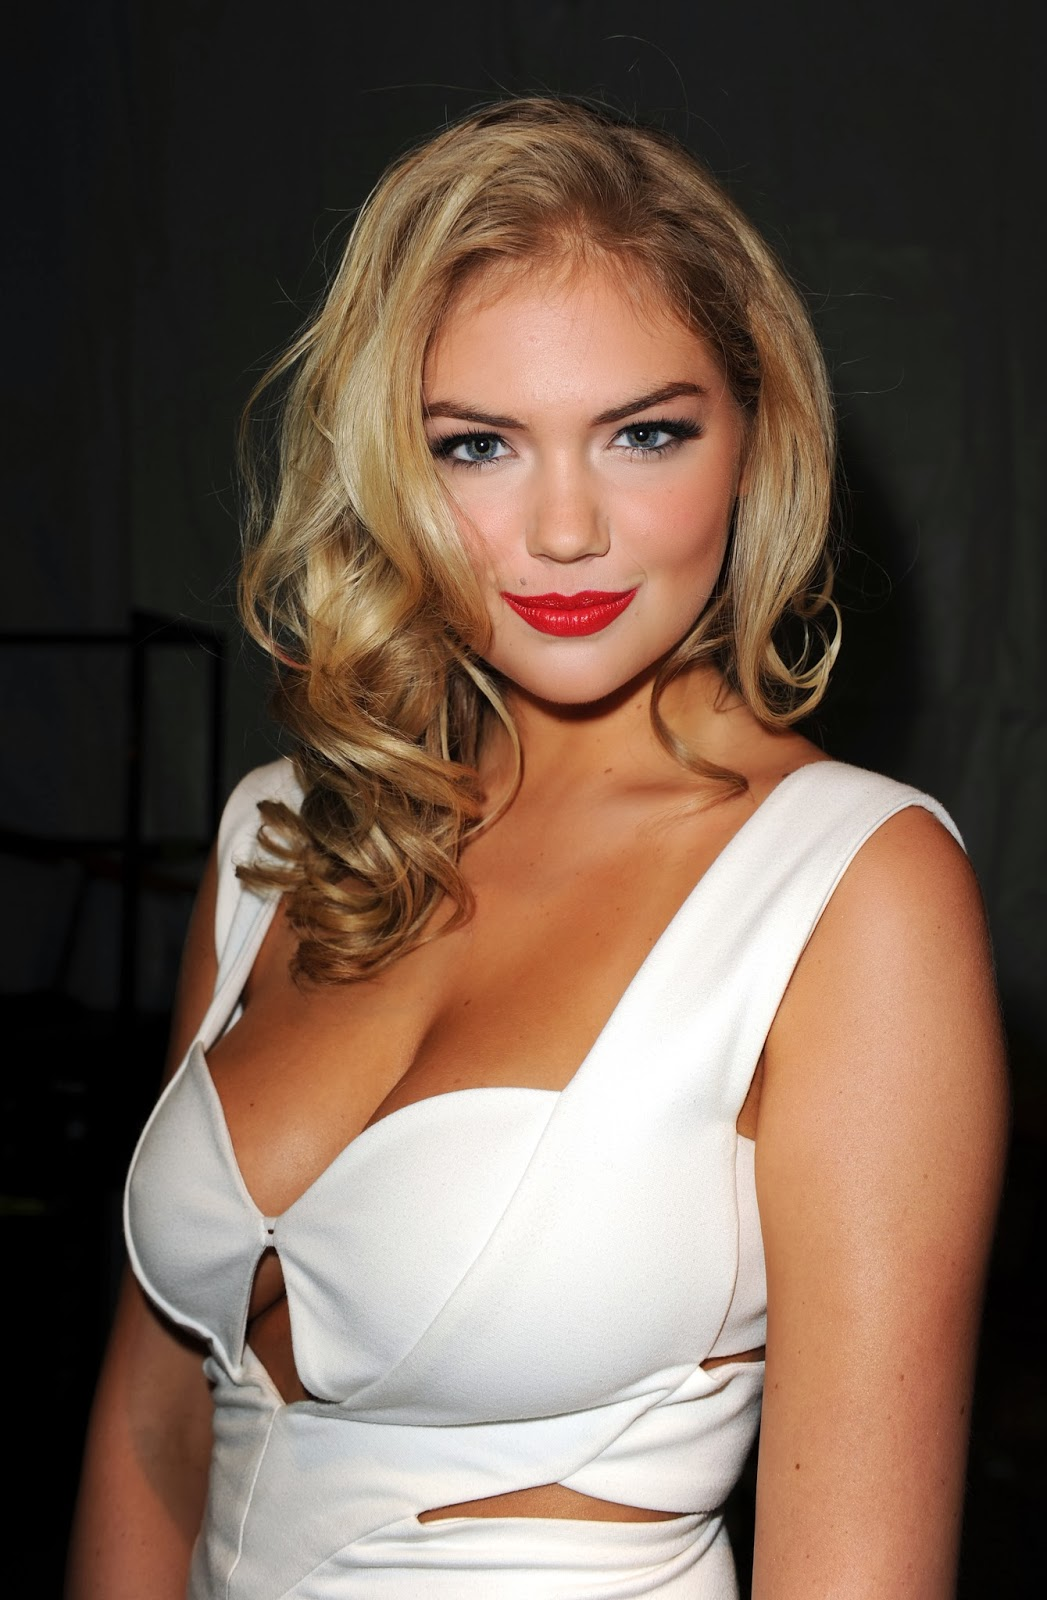 Kate Upton: Celebrity Adore: Kate Upton Showing Some Cleavage From The